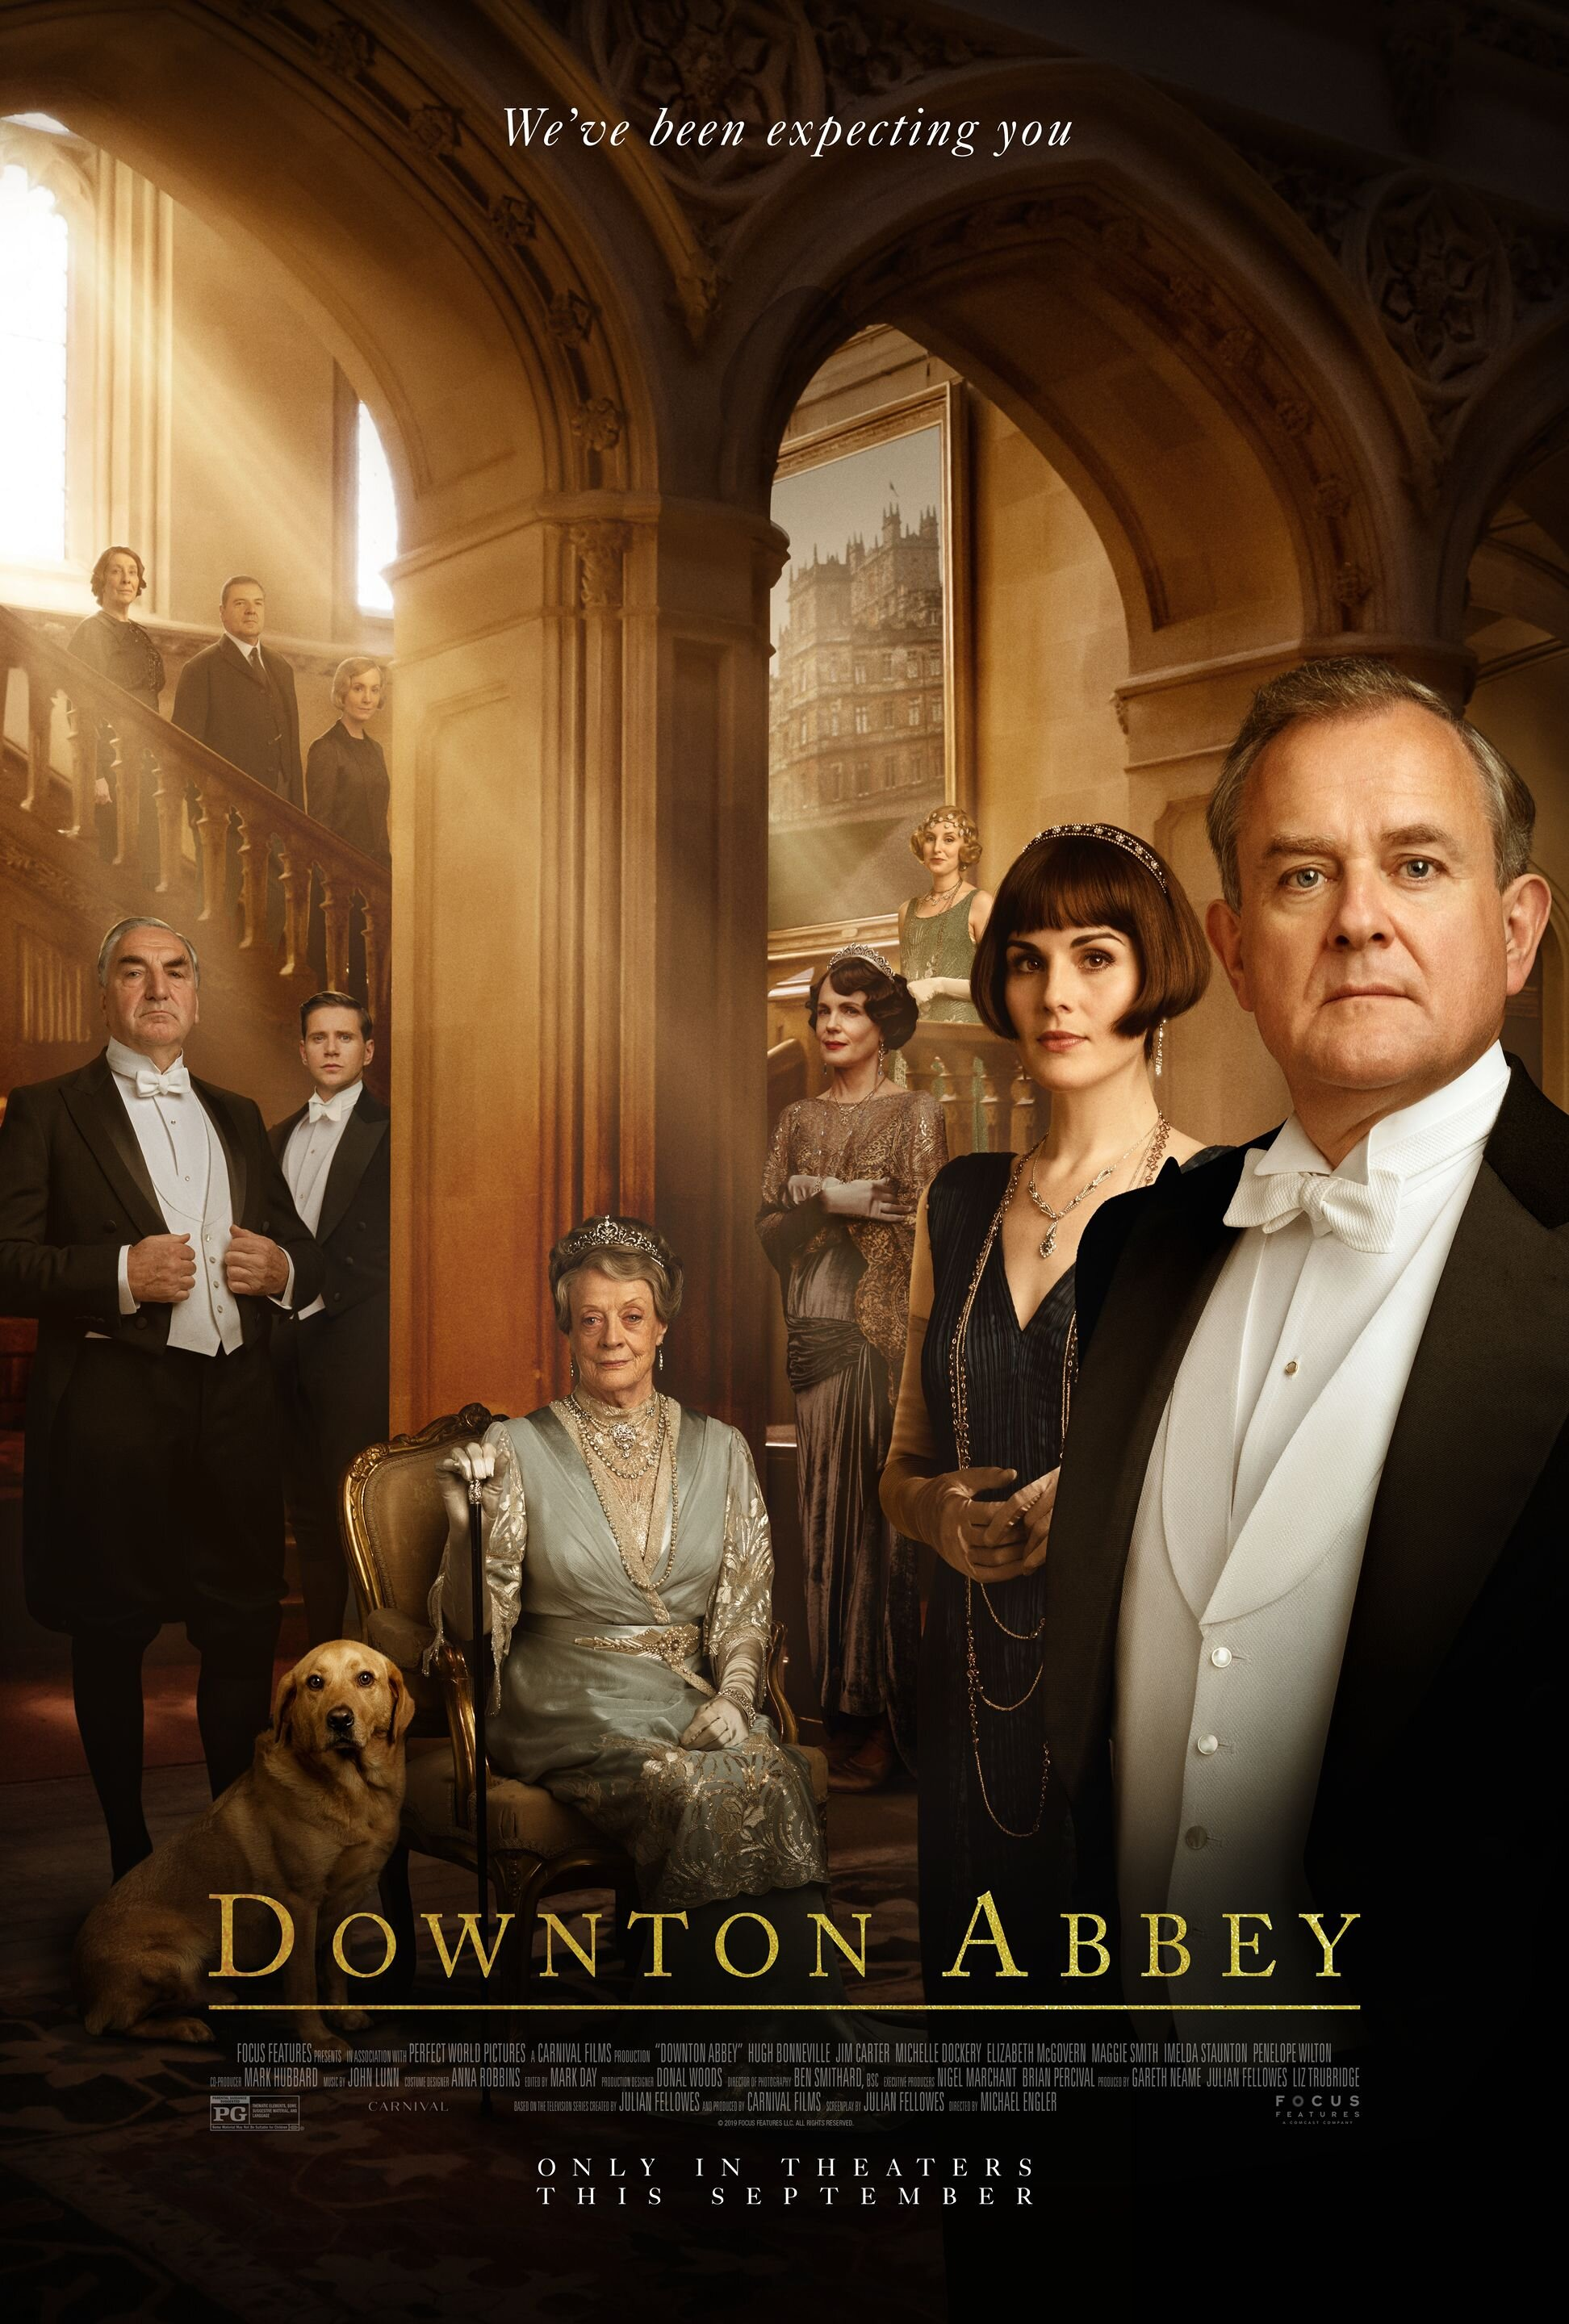 Downton Abbey   (2019) dir. Michael Engler Rated: PG image: ©2019  Focus Features